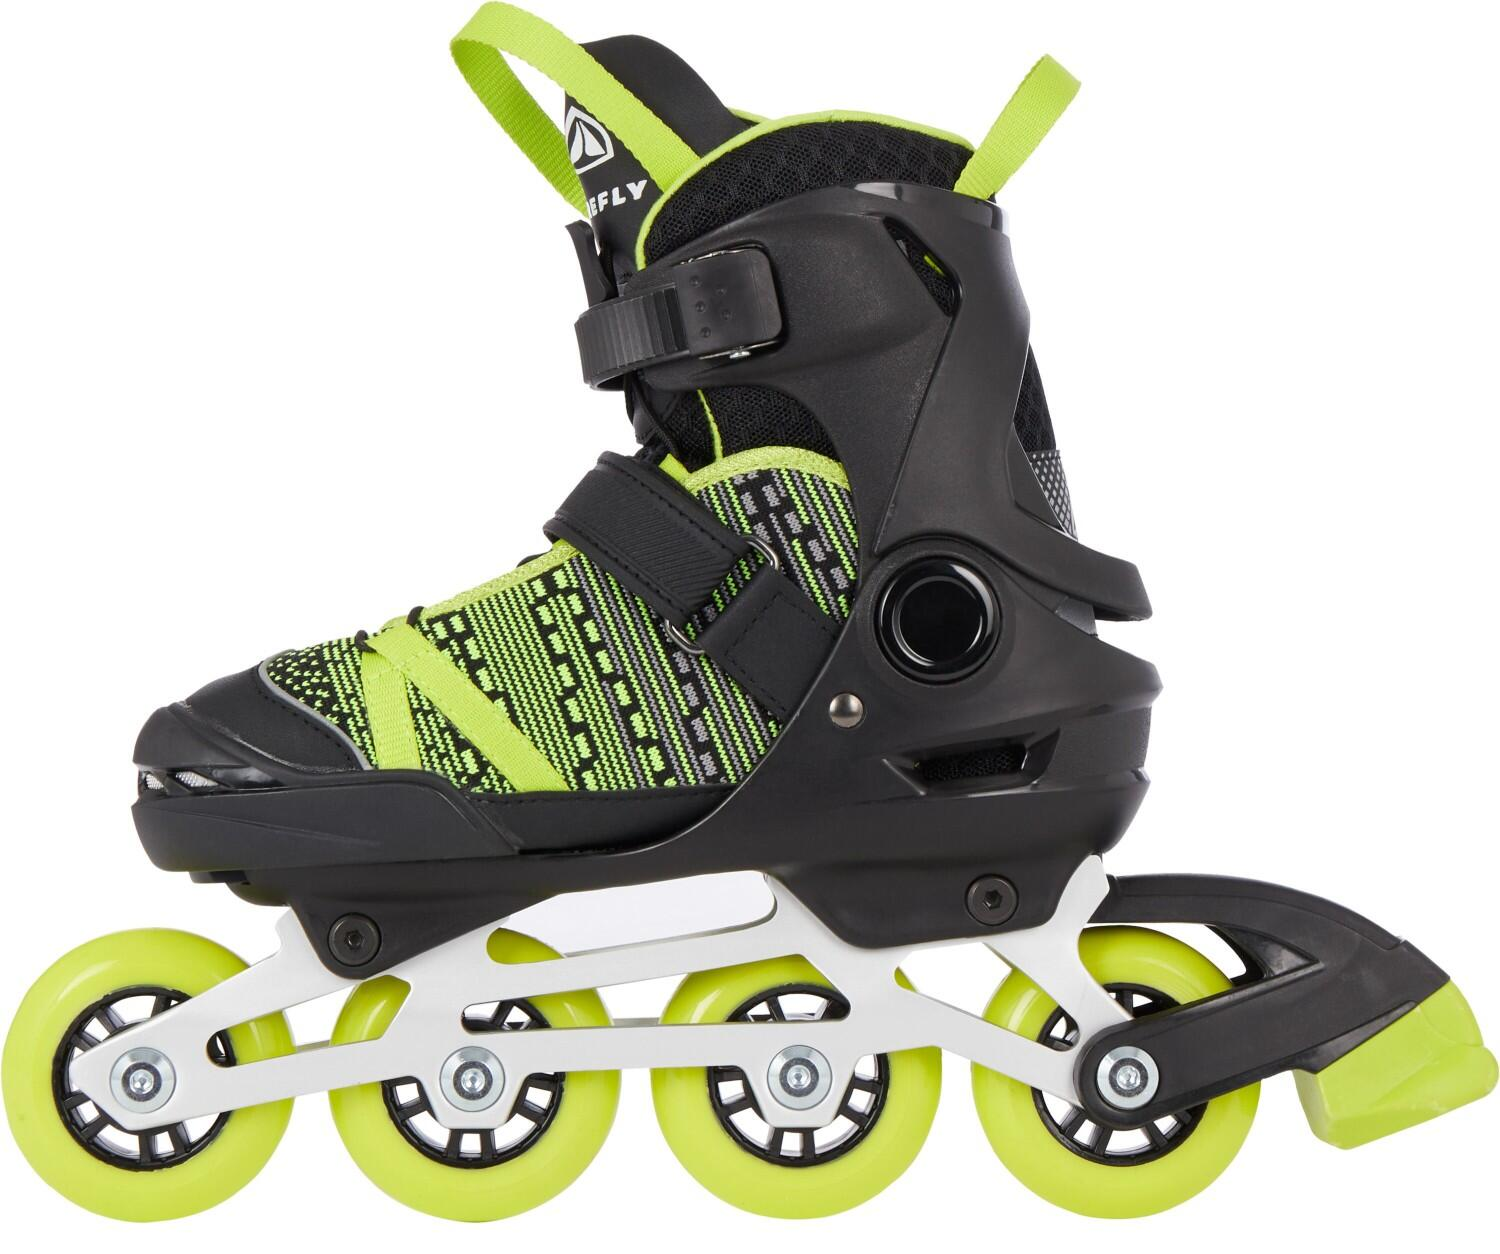 Inliner - Firefly Kinder Inlineskate 710 Boy (Größe 37.0 40.0 (Rollen 76 mm), 900 black green lime) - Onlineshop